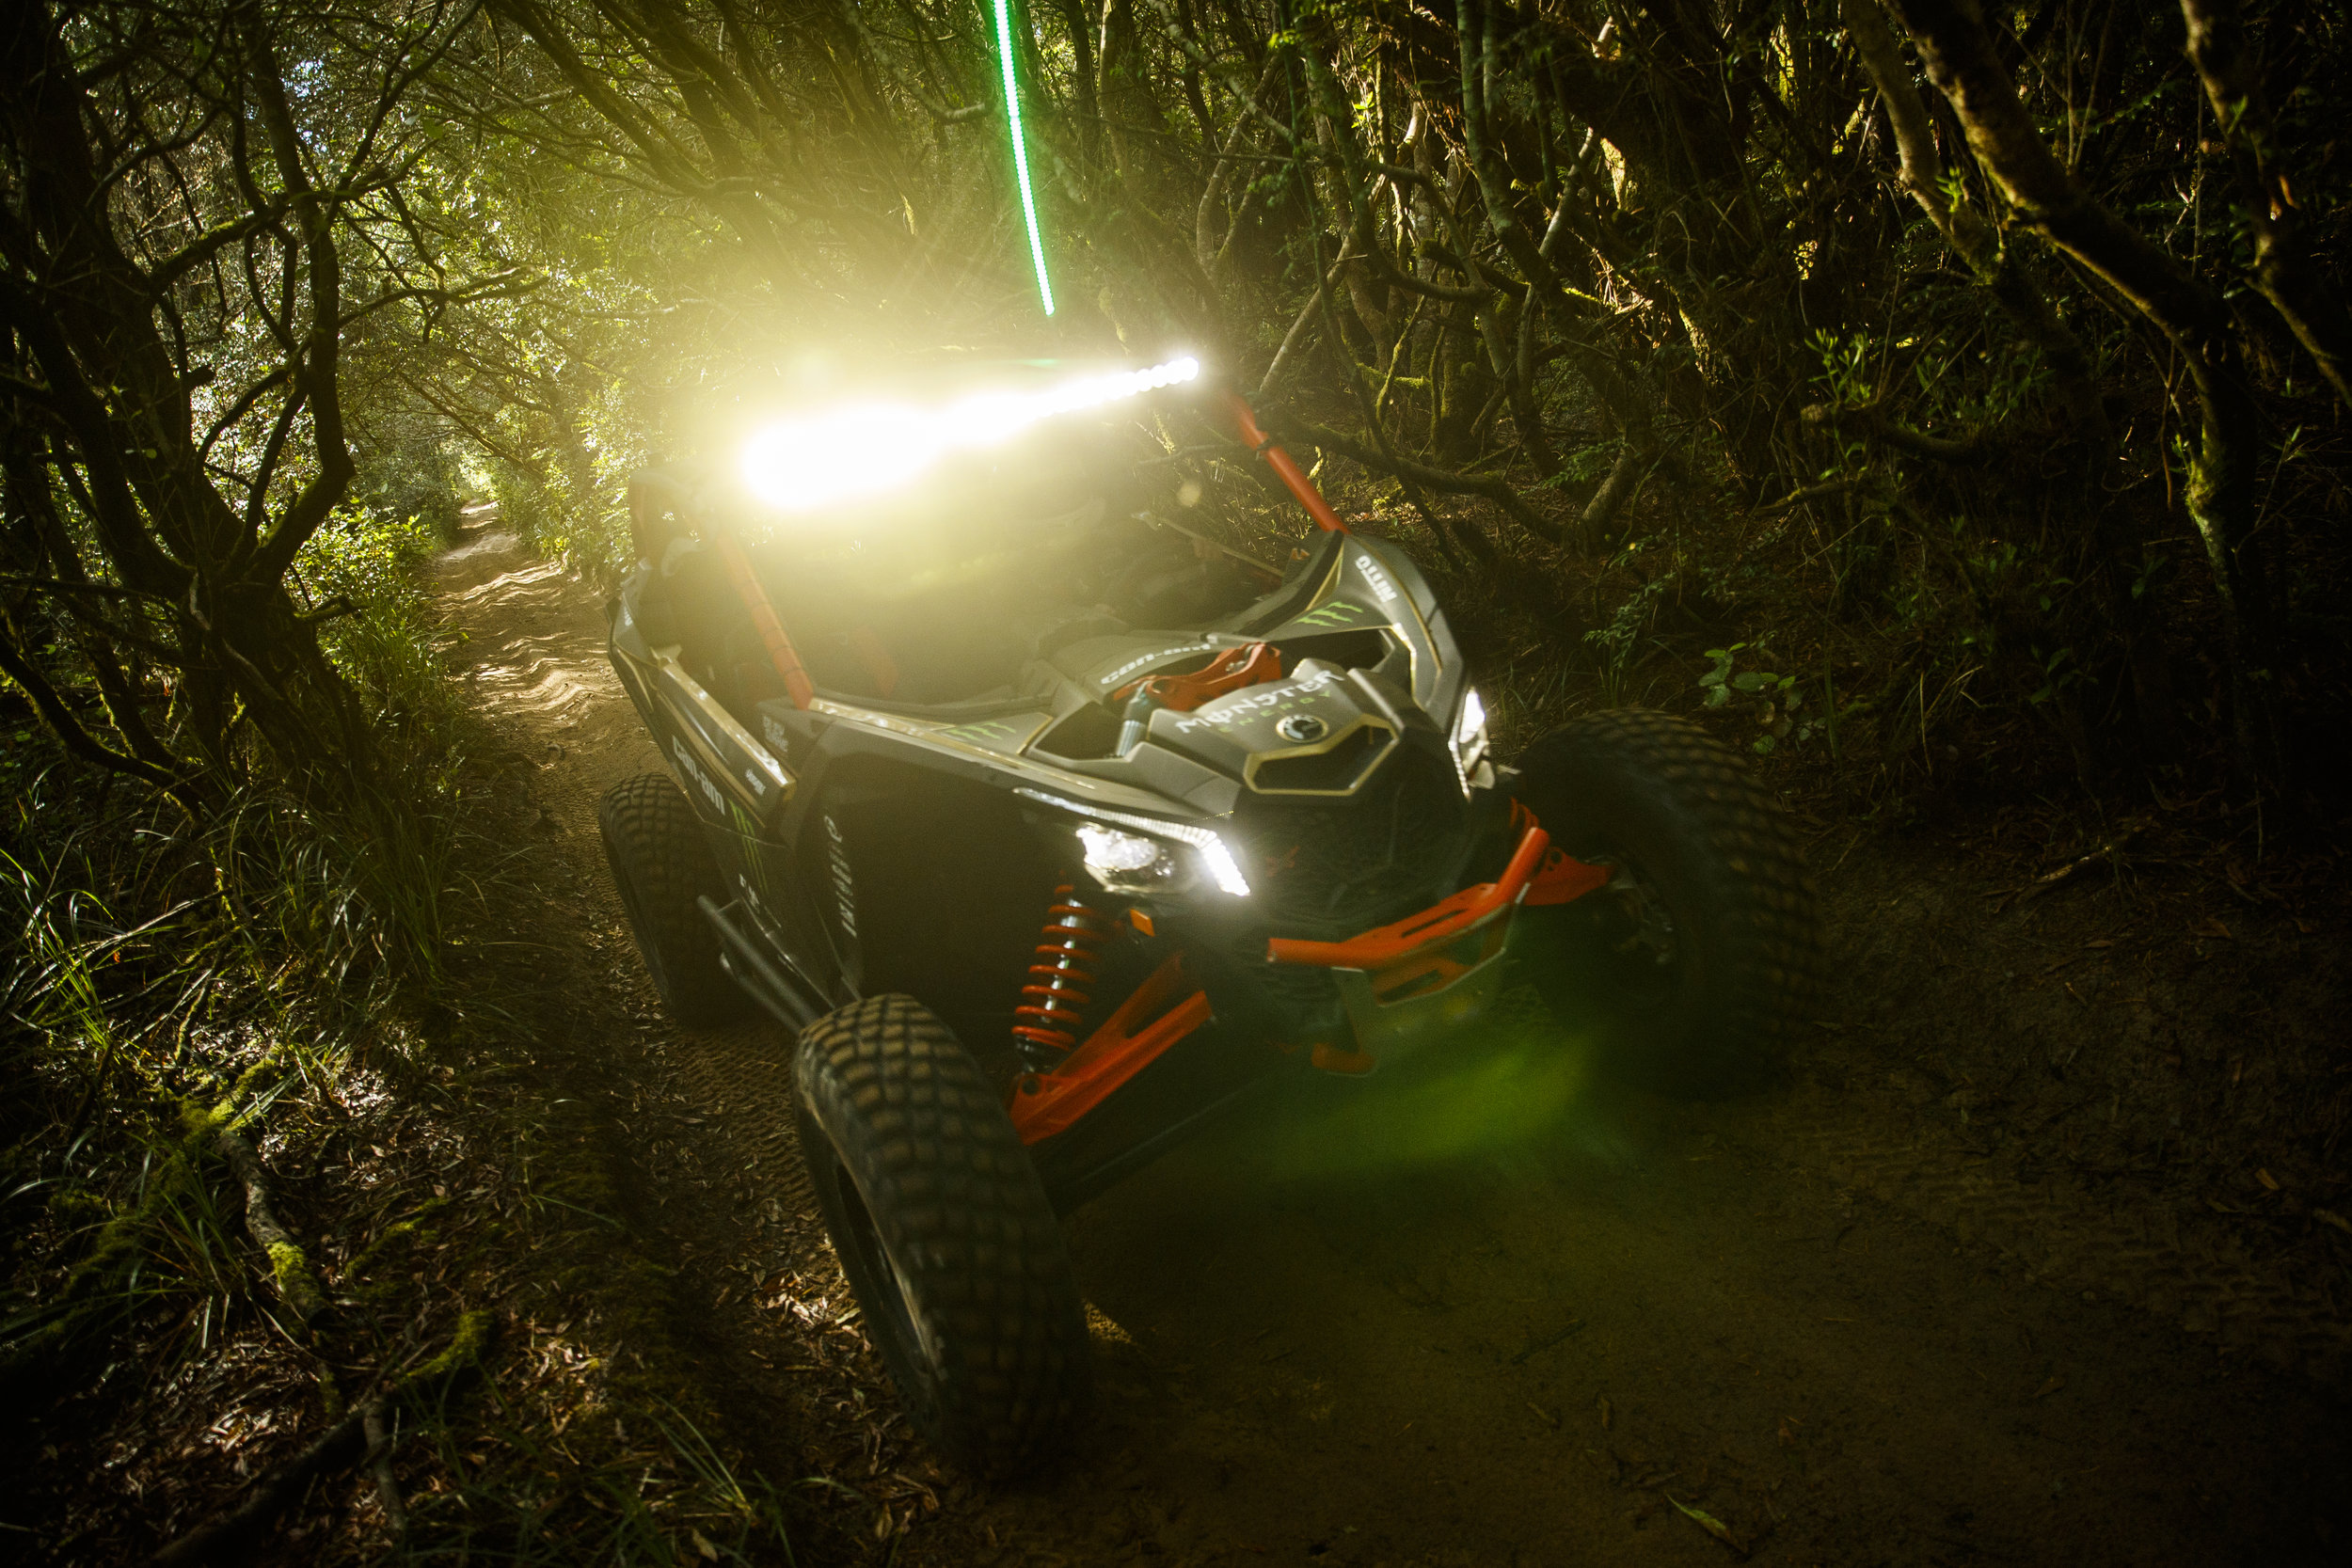 CaseyCurrie_UTVTakeover_CoosBay_Oregon_Can-Am_031.jpg